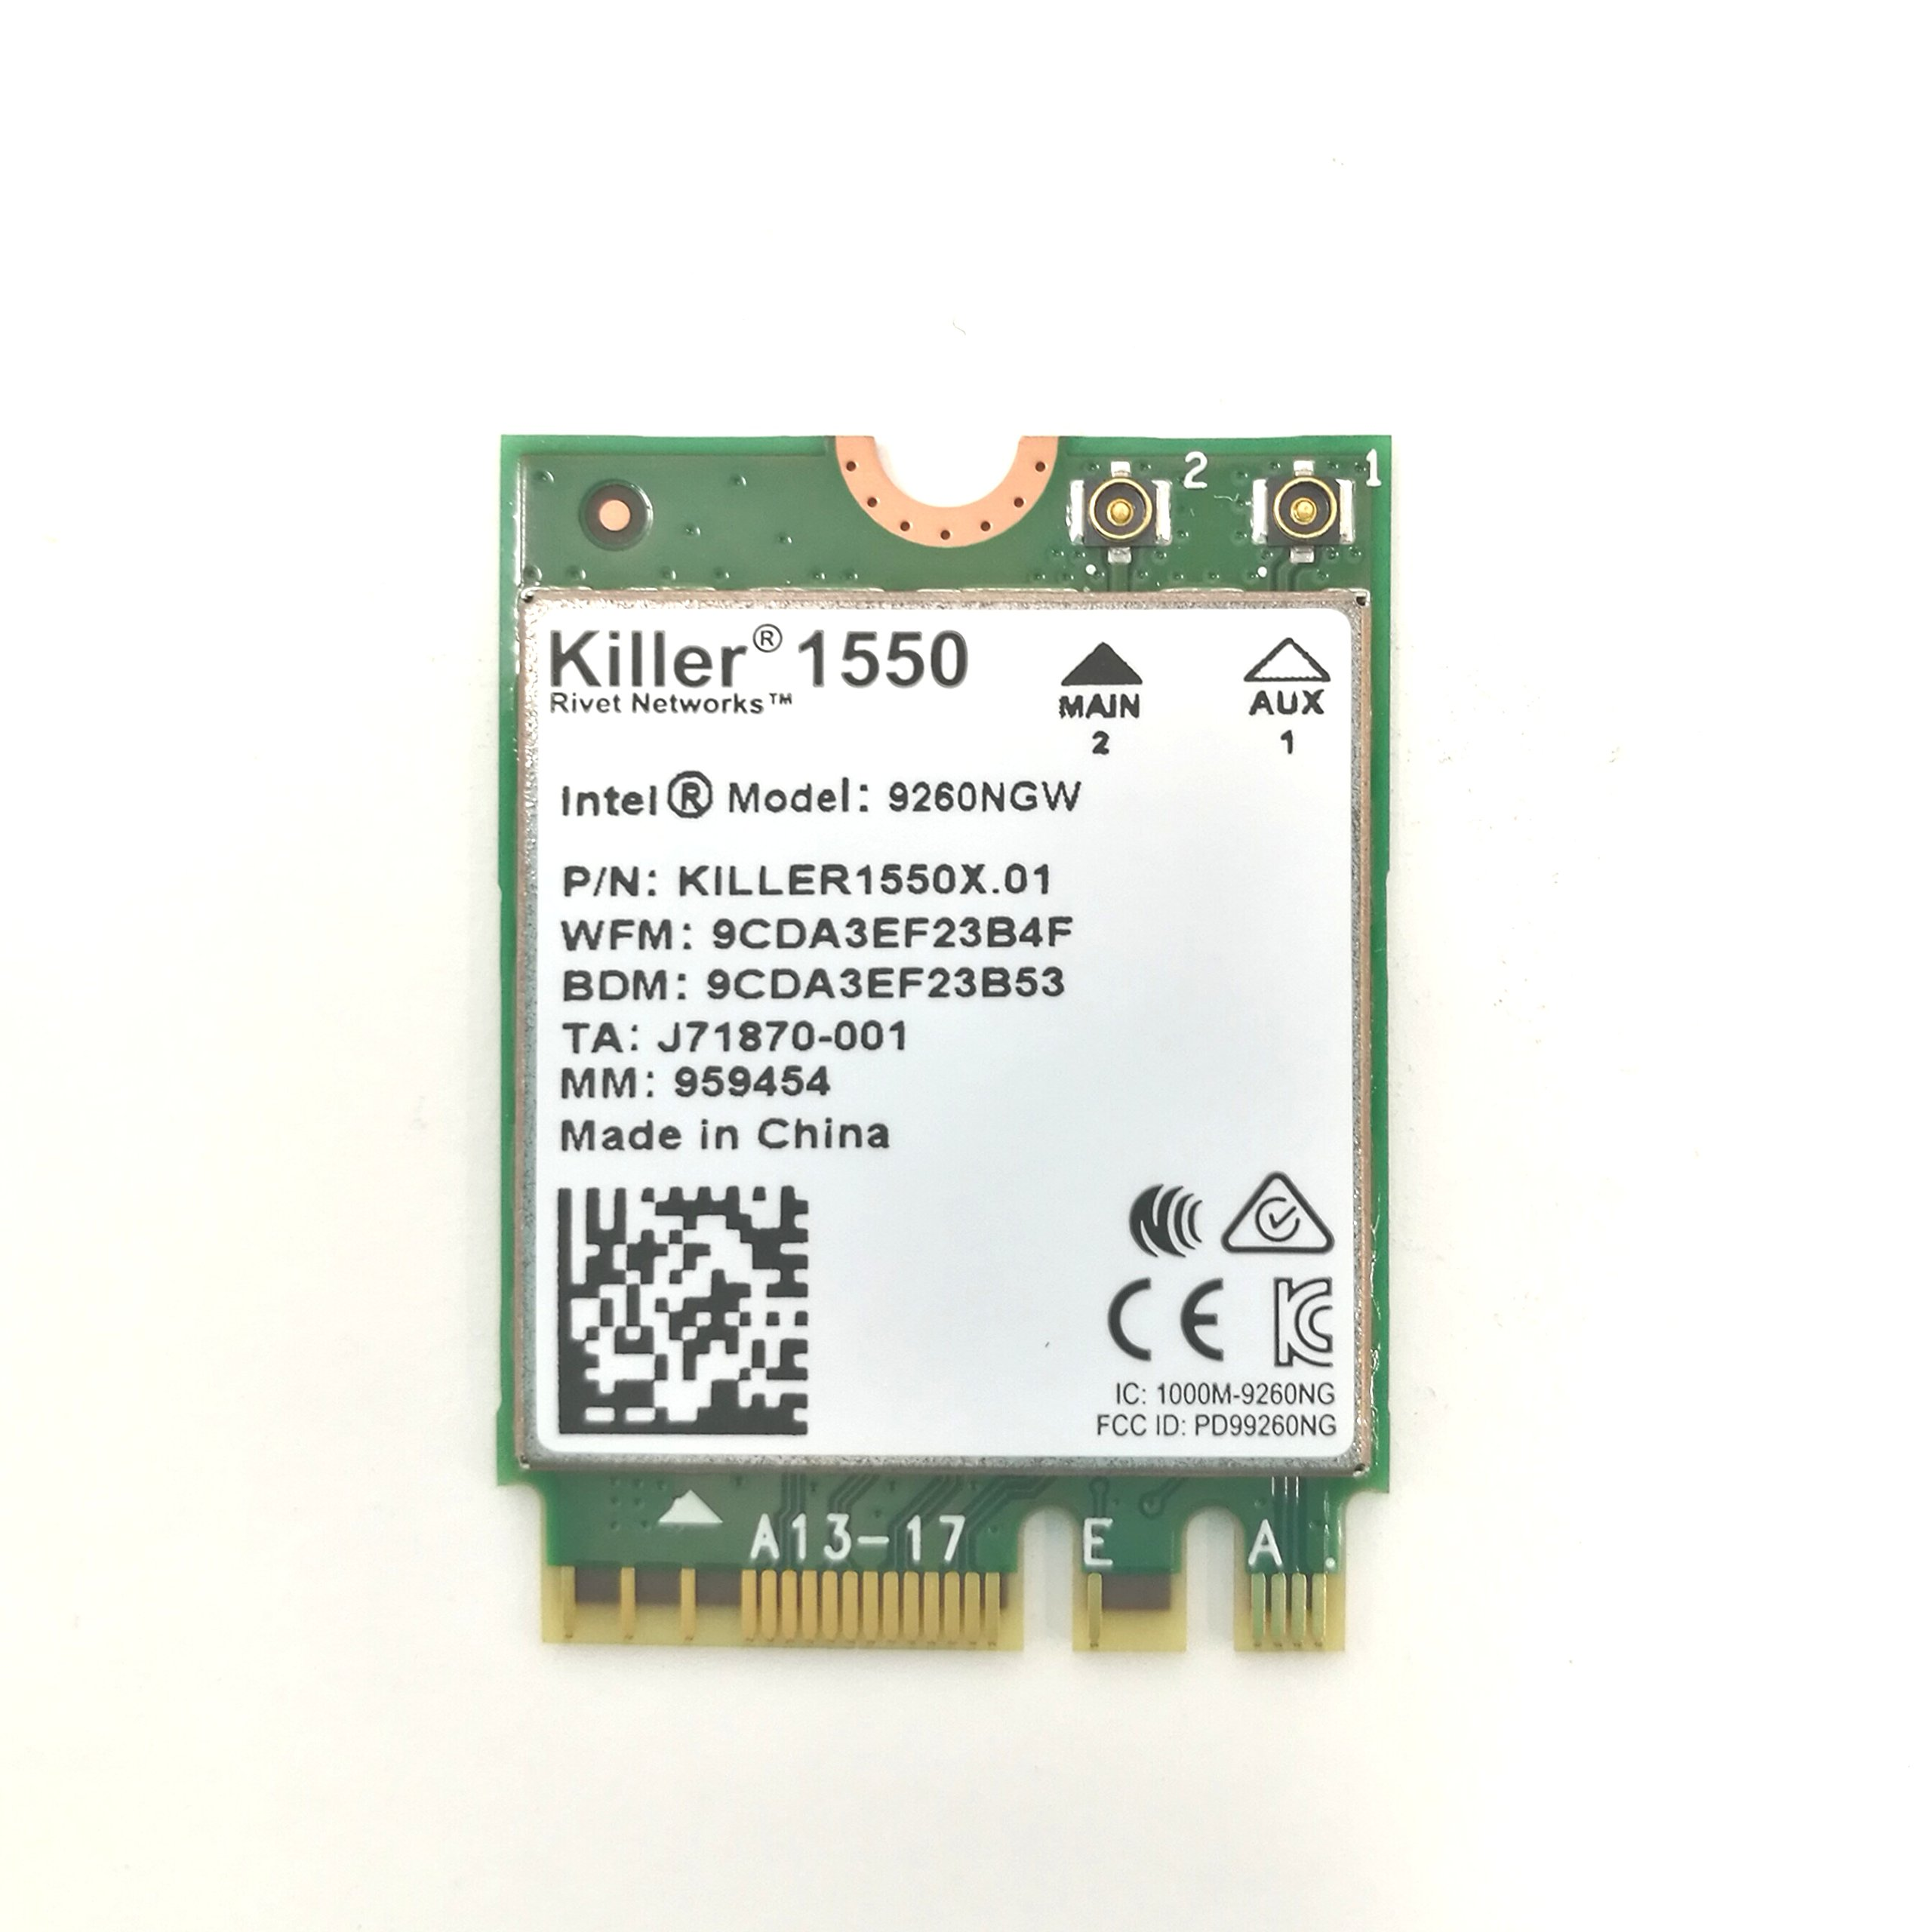 HIDevolution Killer Wireless-AC 1550 802.11ac 2x2 Wireless Card w/Bluetooth 5.0, Replacement for Killer 1535